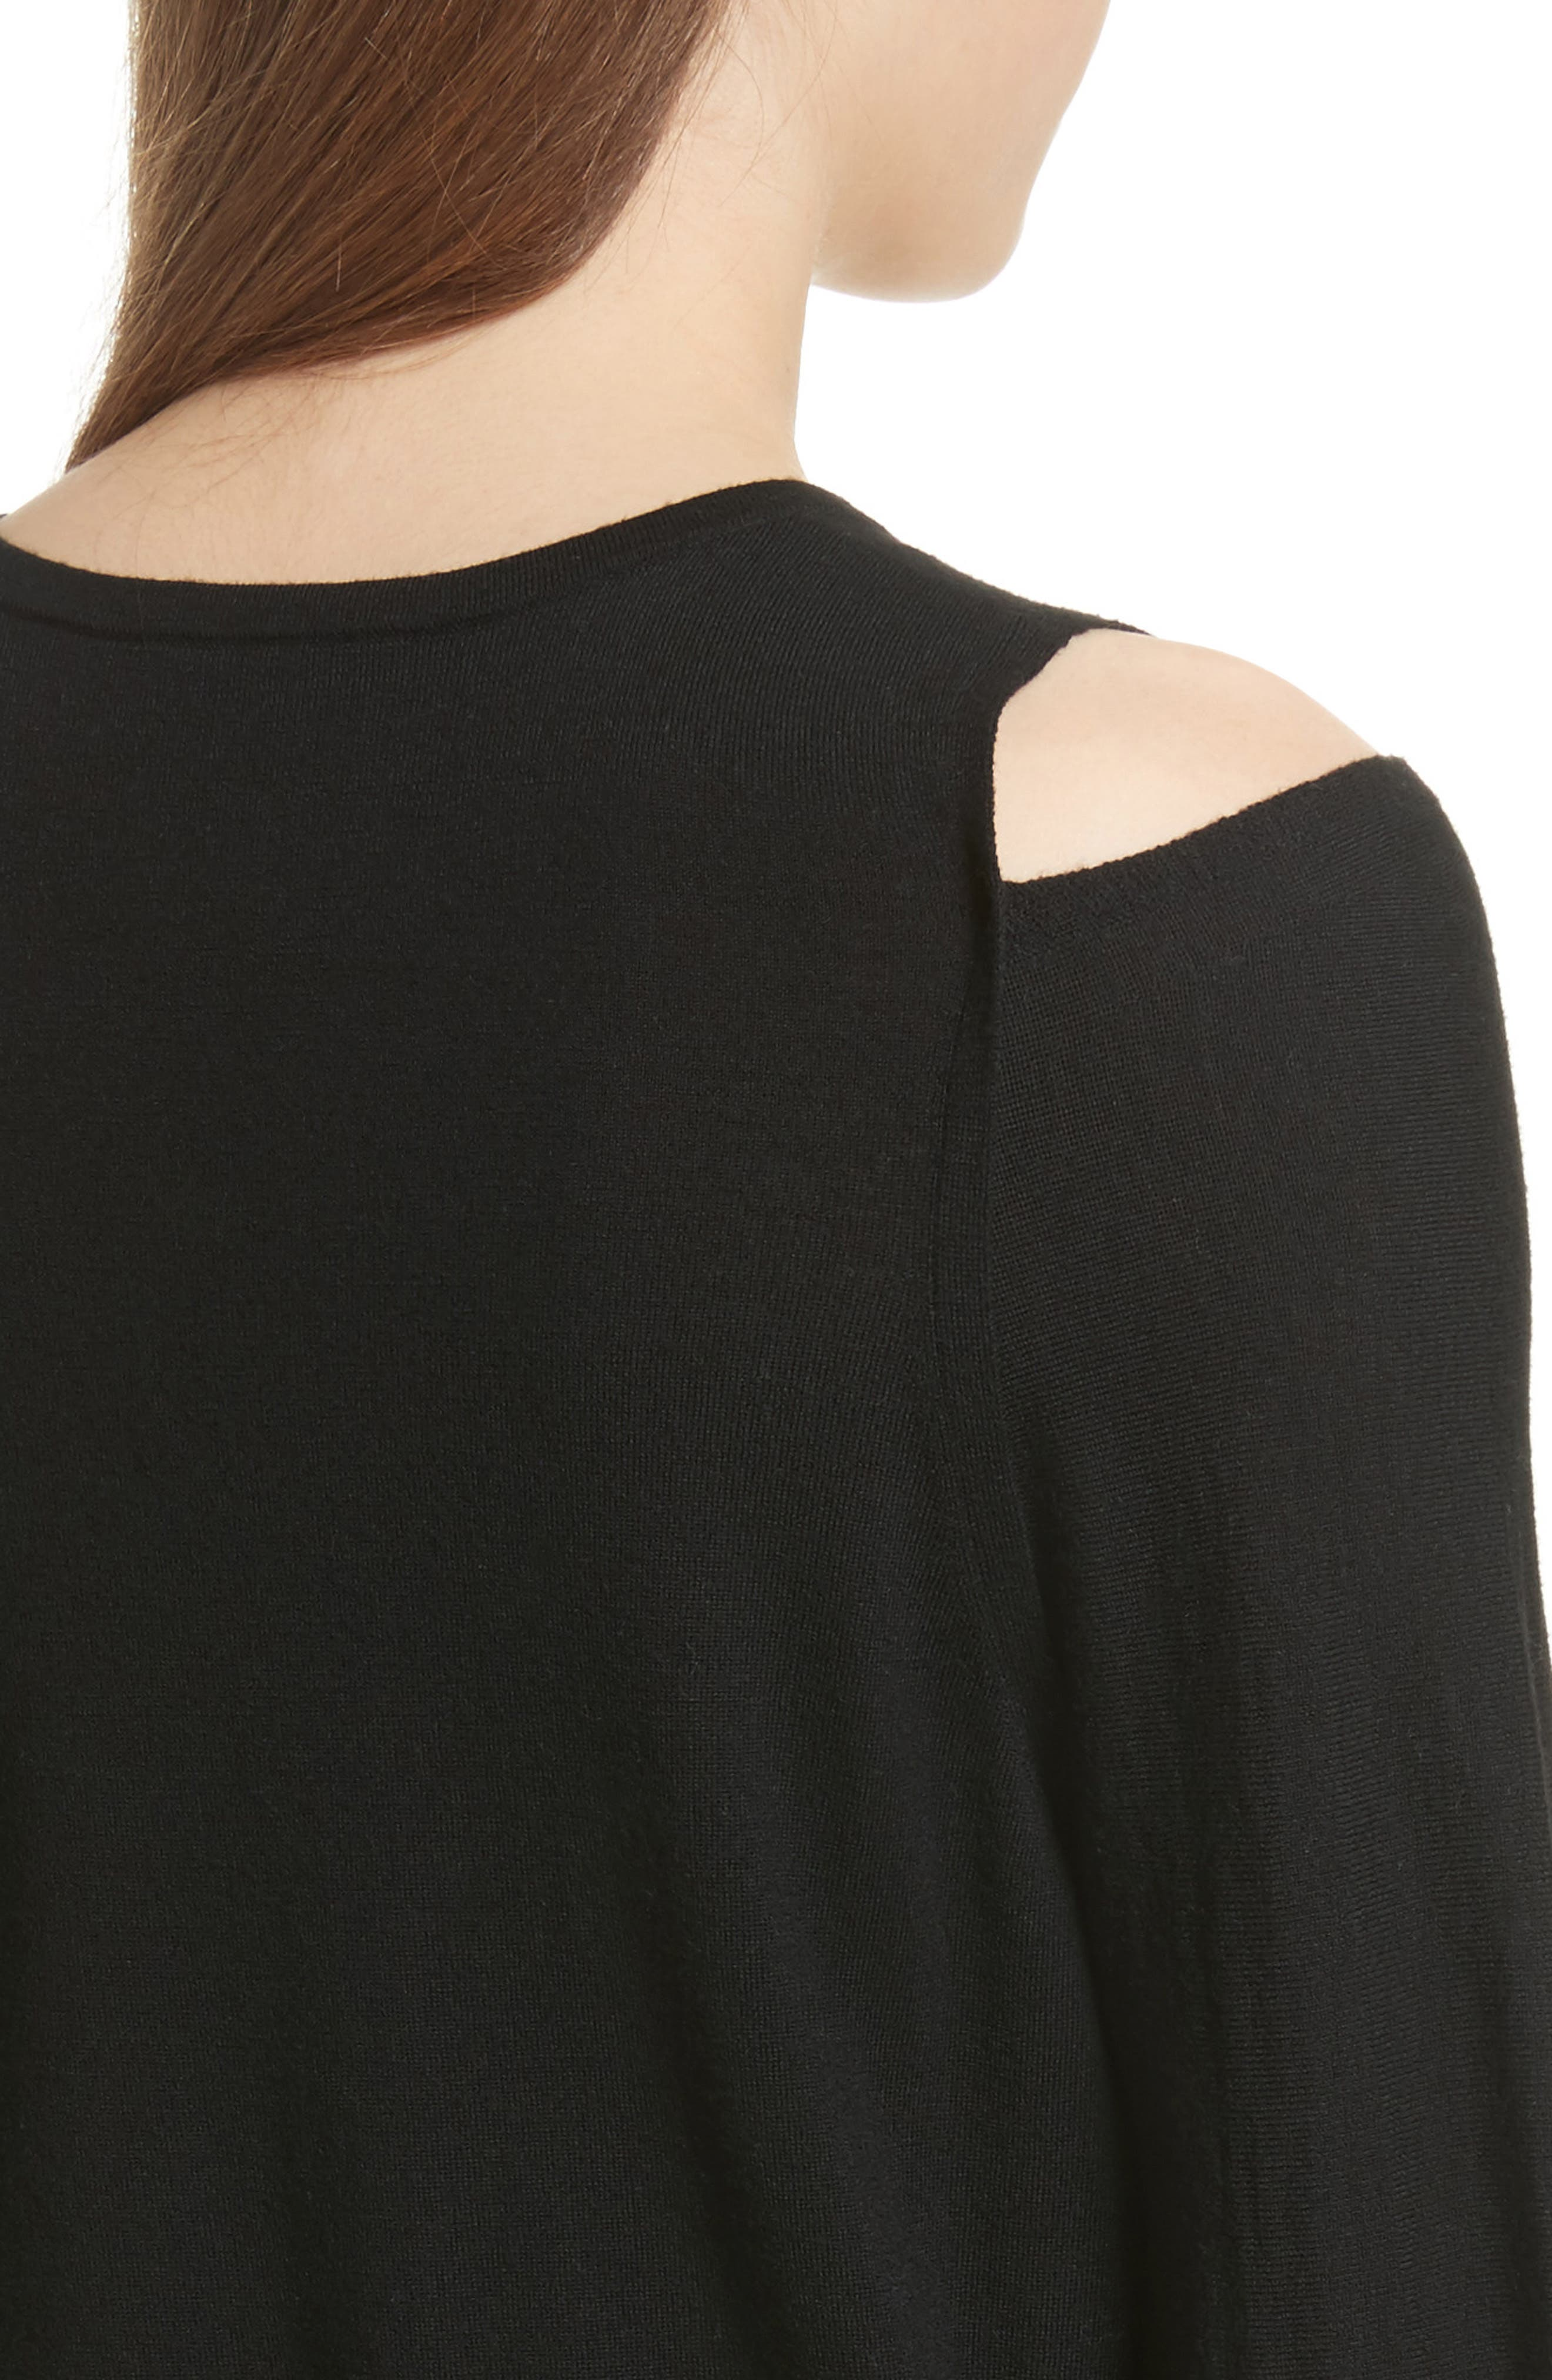 Wool Cold Shoulder Sweater,                             Alternate thumbnail 2, color,                             001